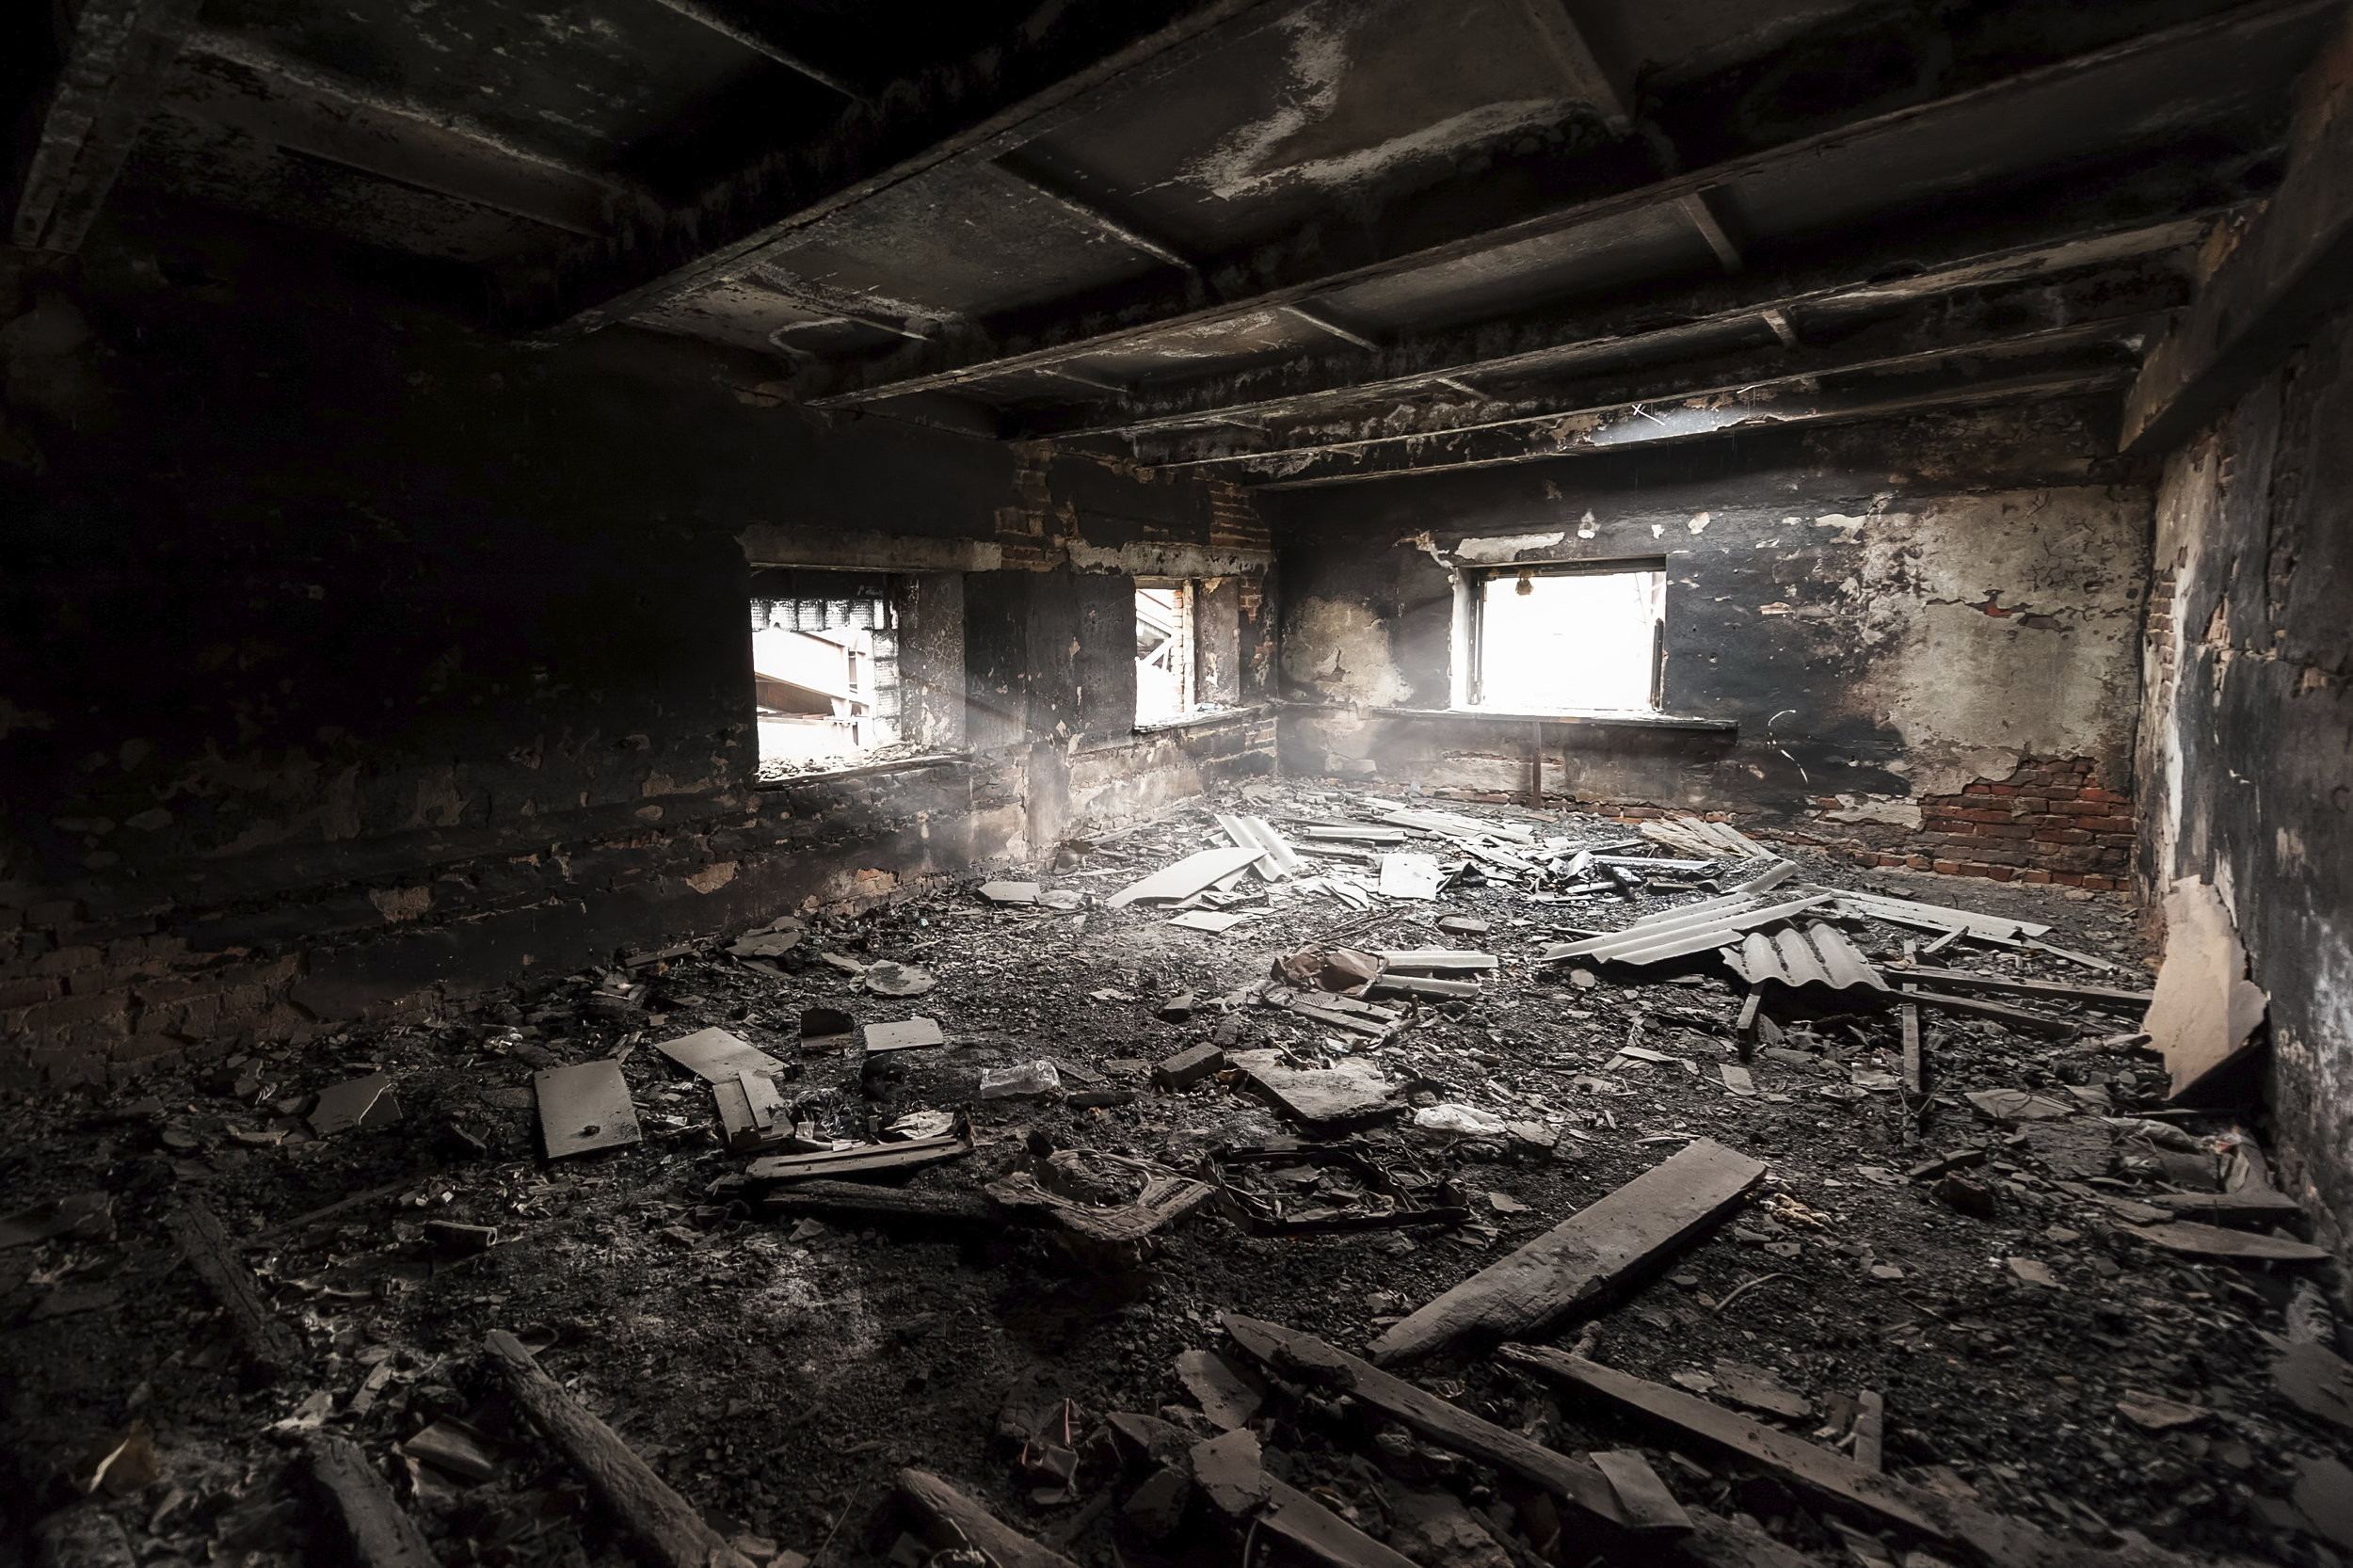 Residential Fire and Smoke Damage | Professional Loss Adjusters